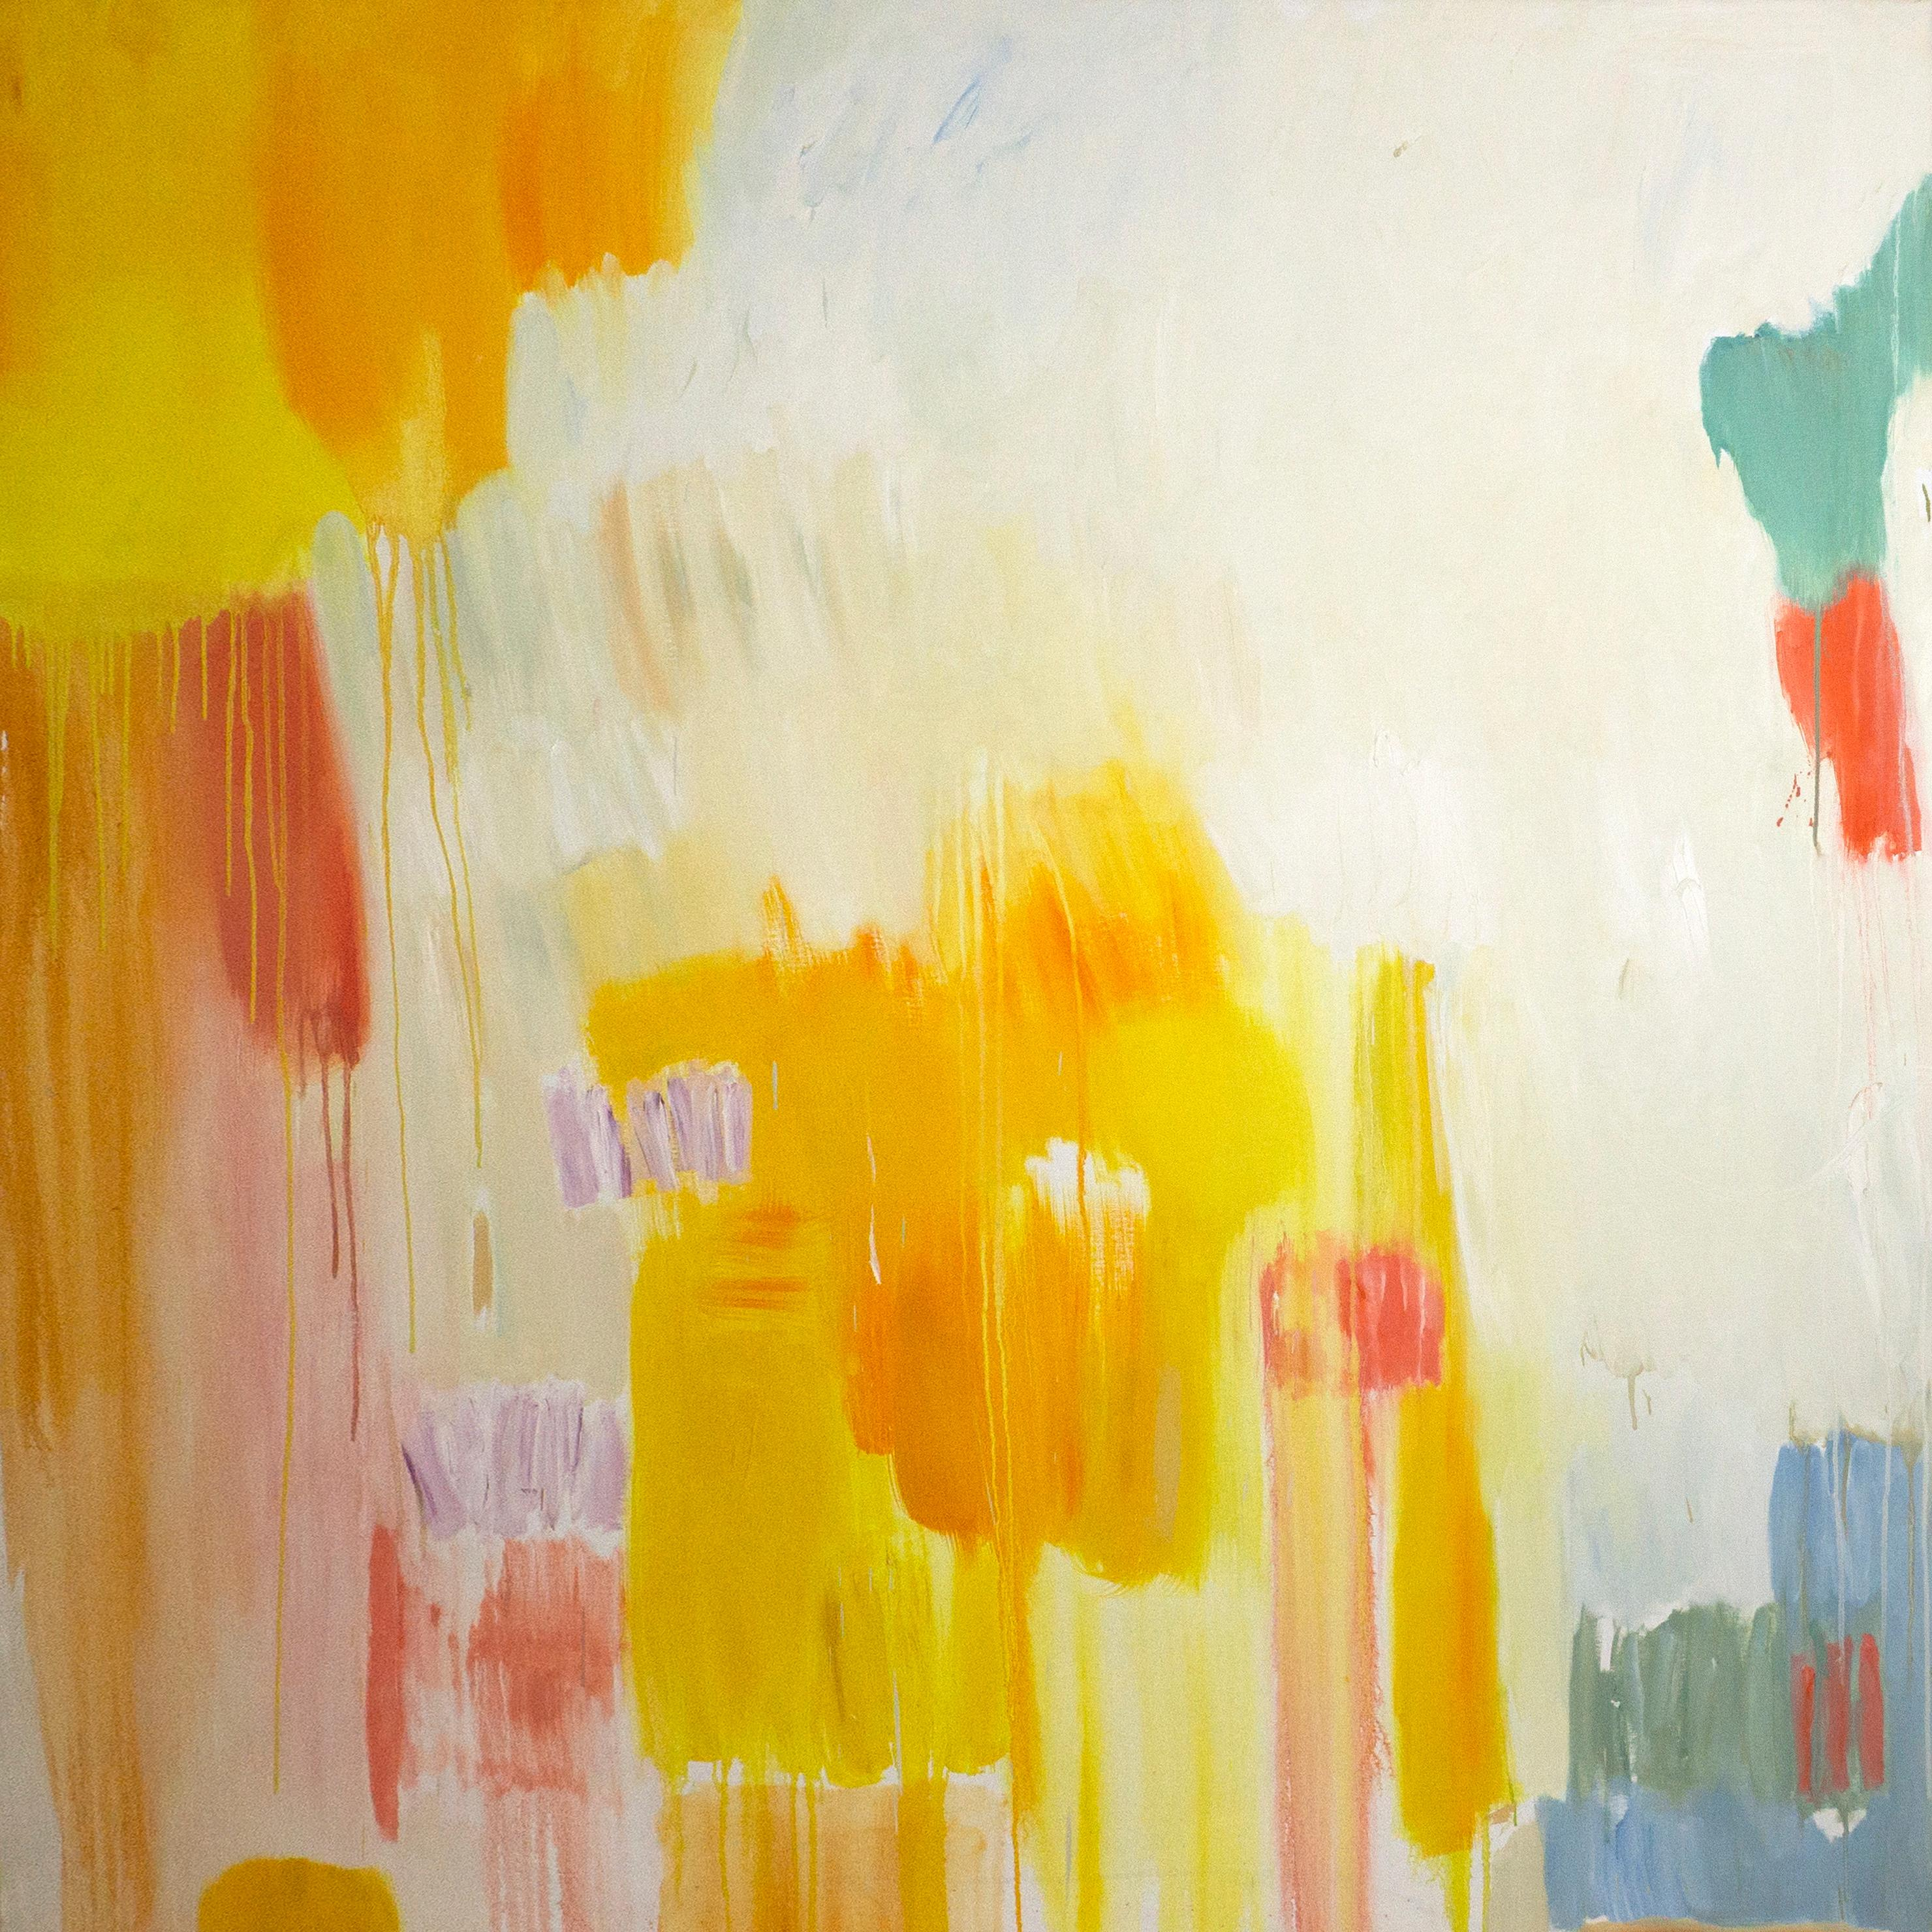 Abstract Melting Sunset, Warm Tones Oil Painting on Canvas, Vibrant Yellow & Red